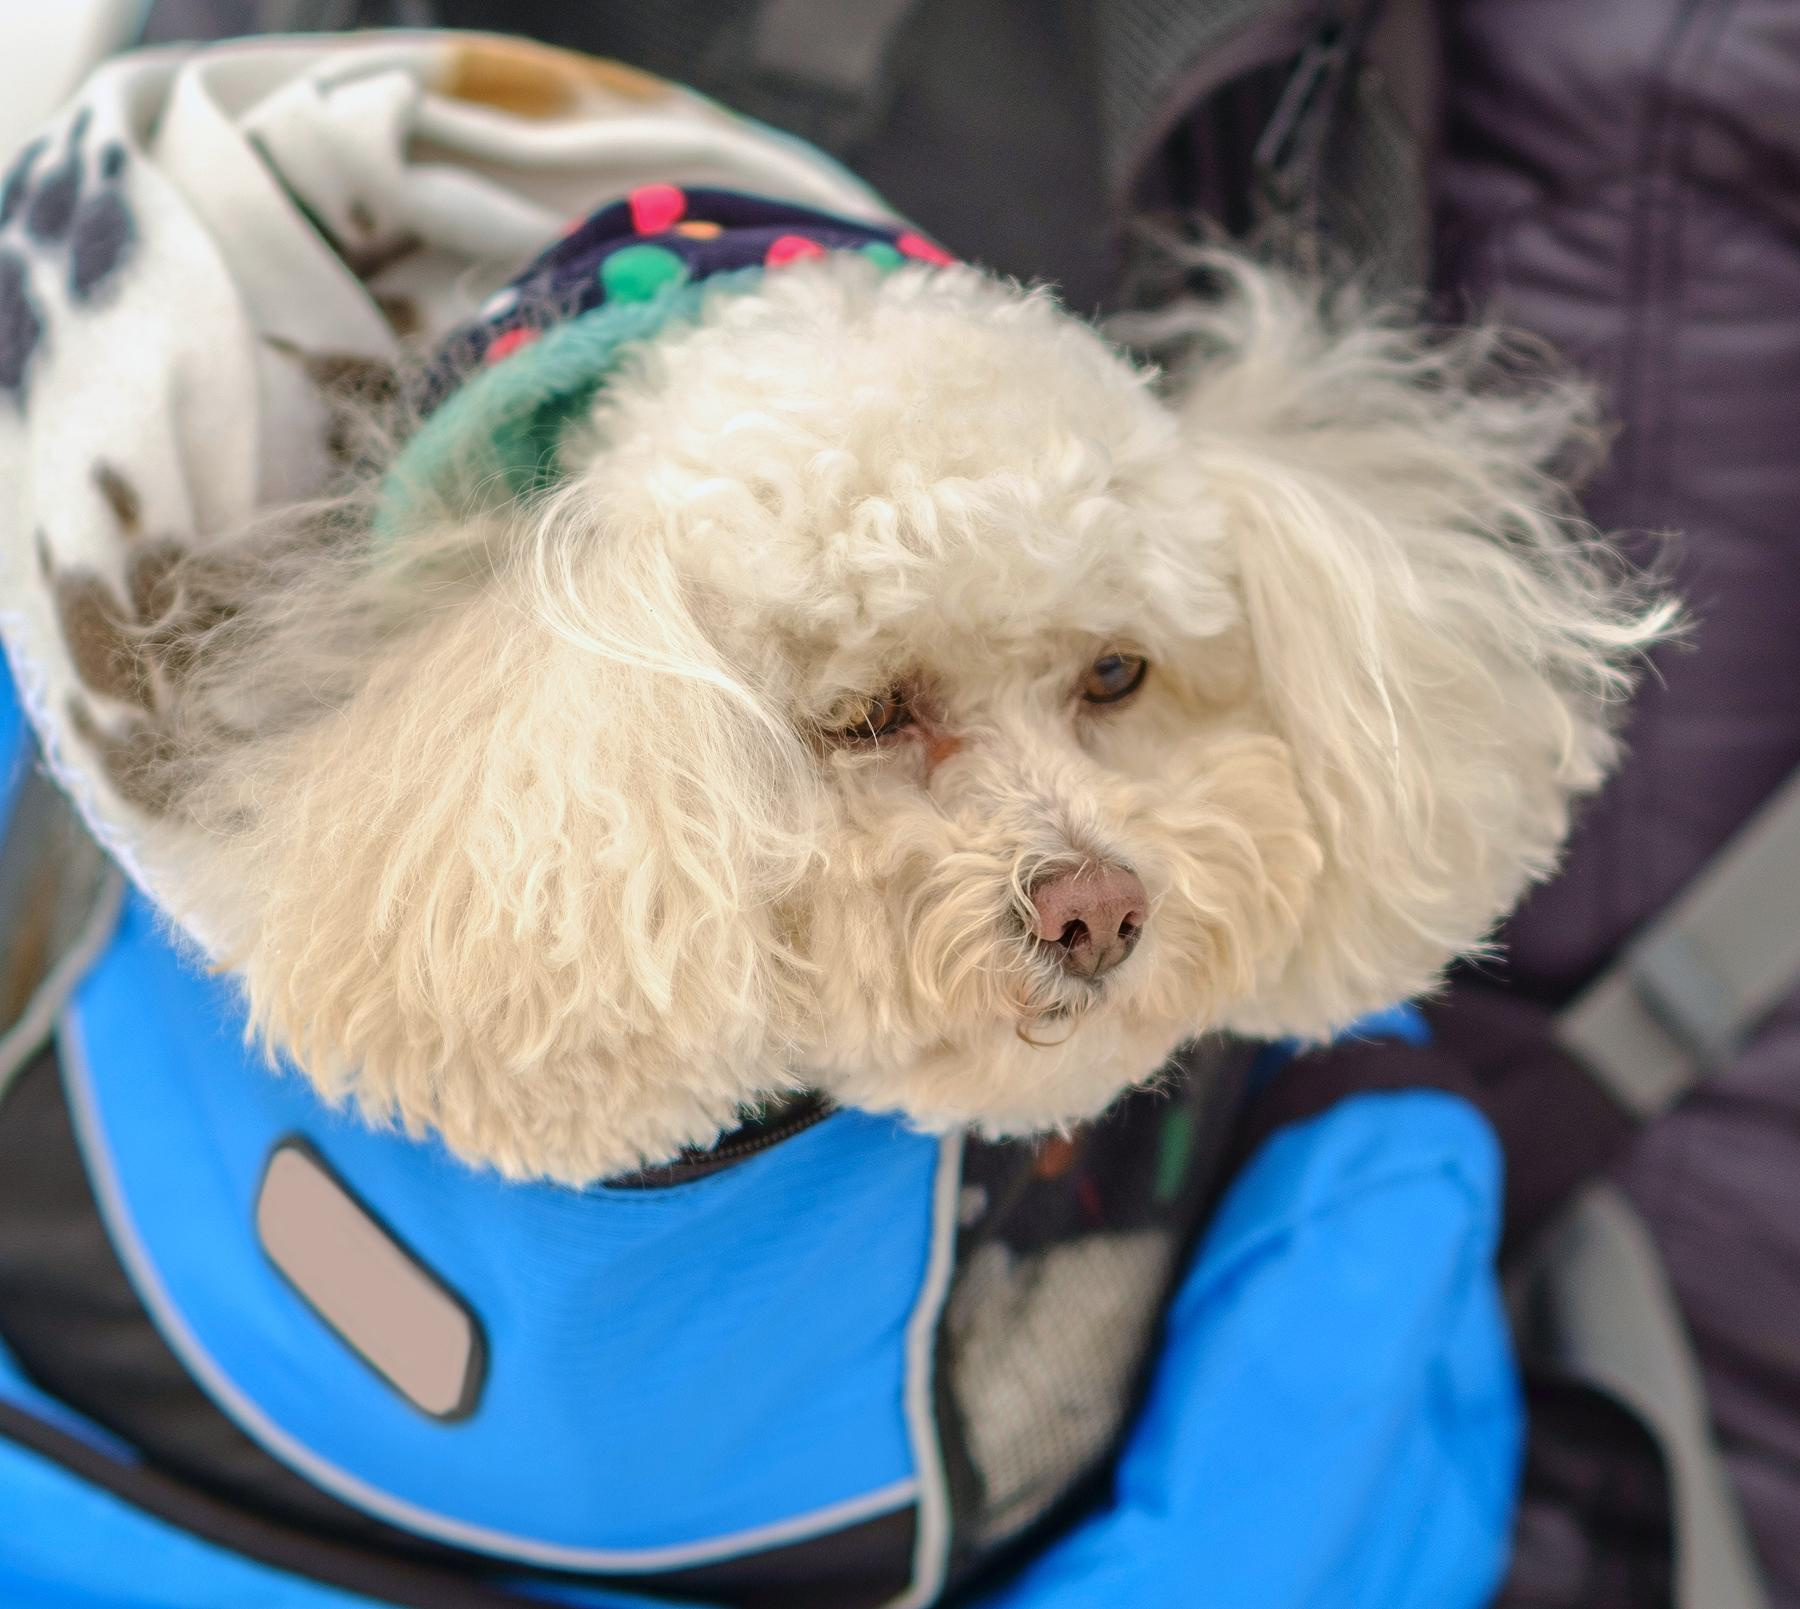 Pet Dogs Must Be In A Carrier To Ride The NYC Subway So Big - Nyc subway bans dogs unless fit bag new yorkers reacted